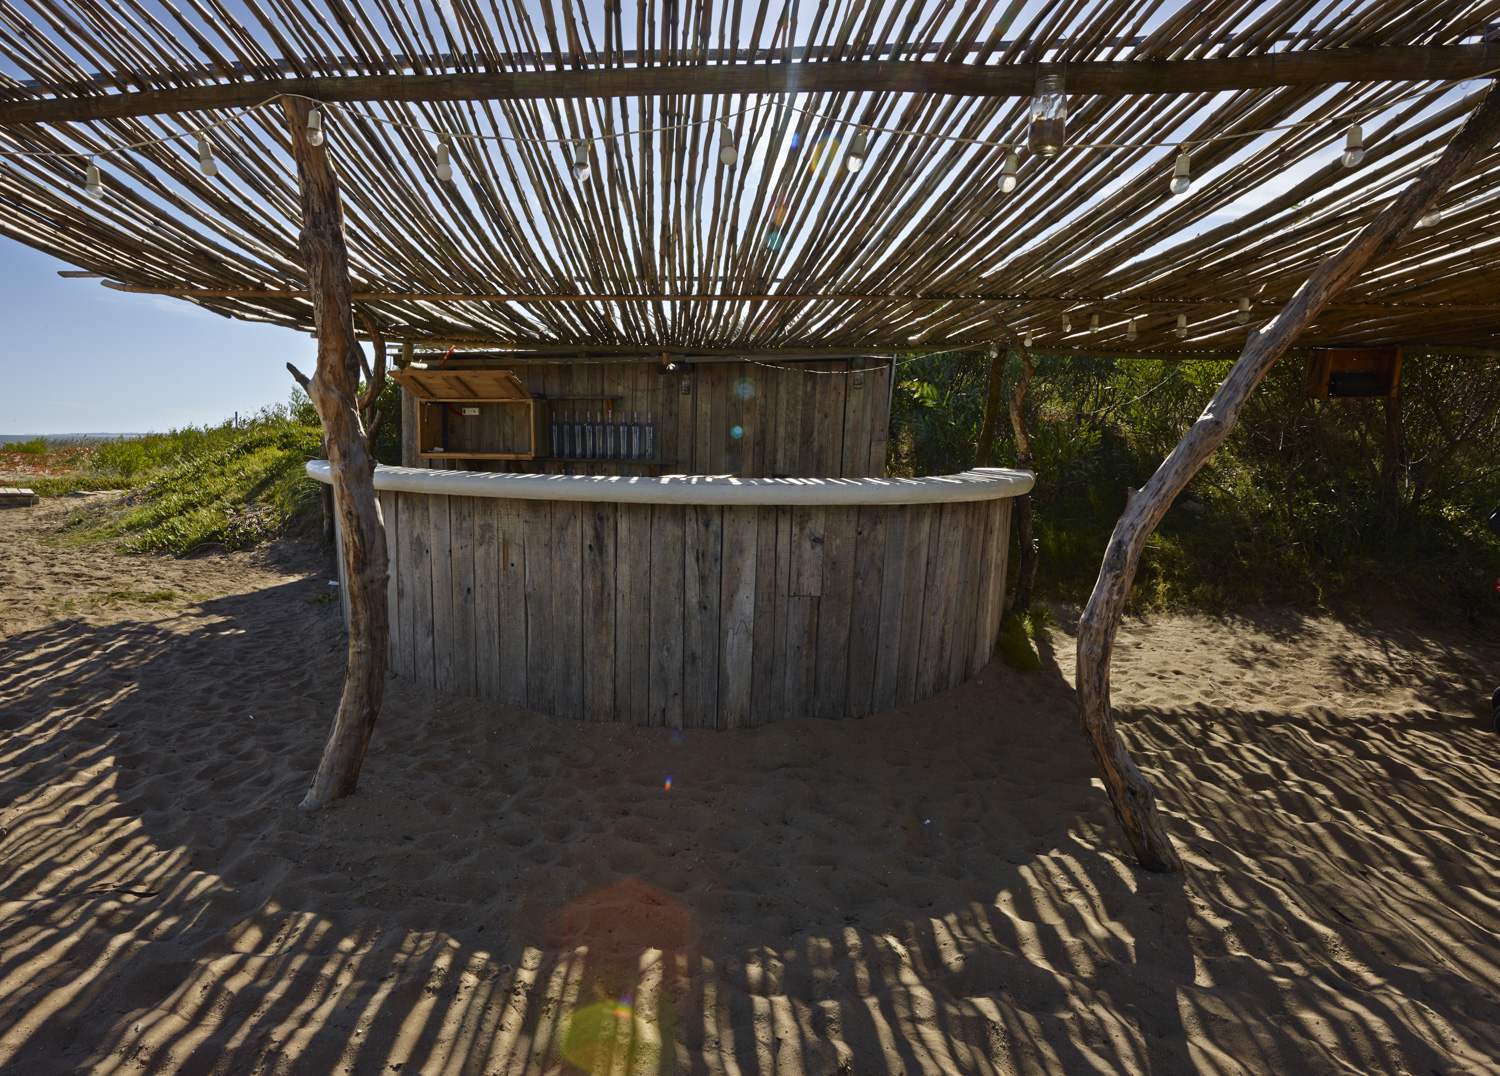 Susana Restaurant - Jose Ignacio, March 2016